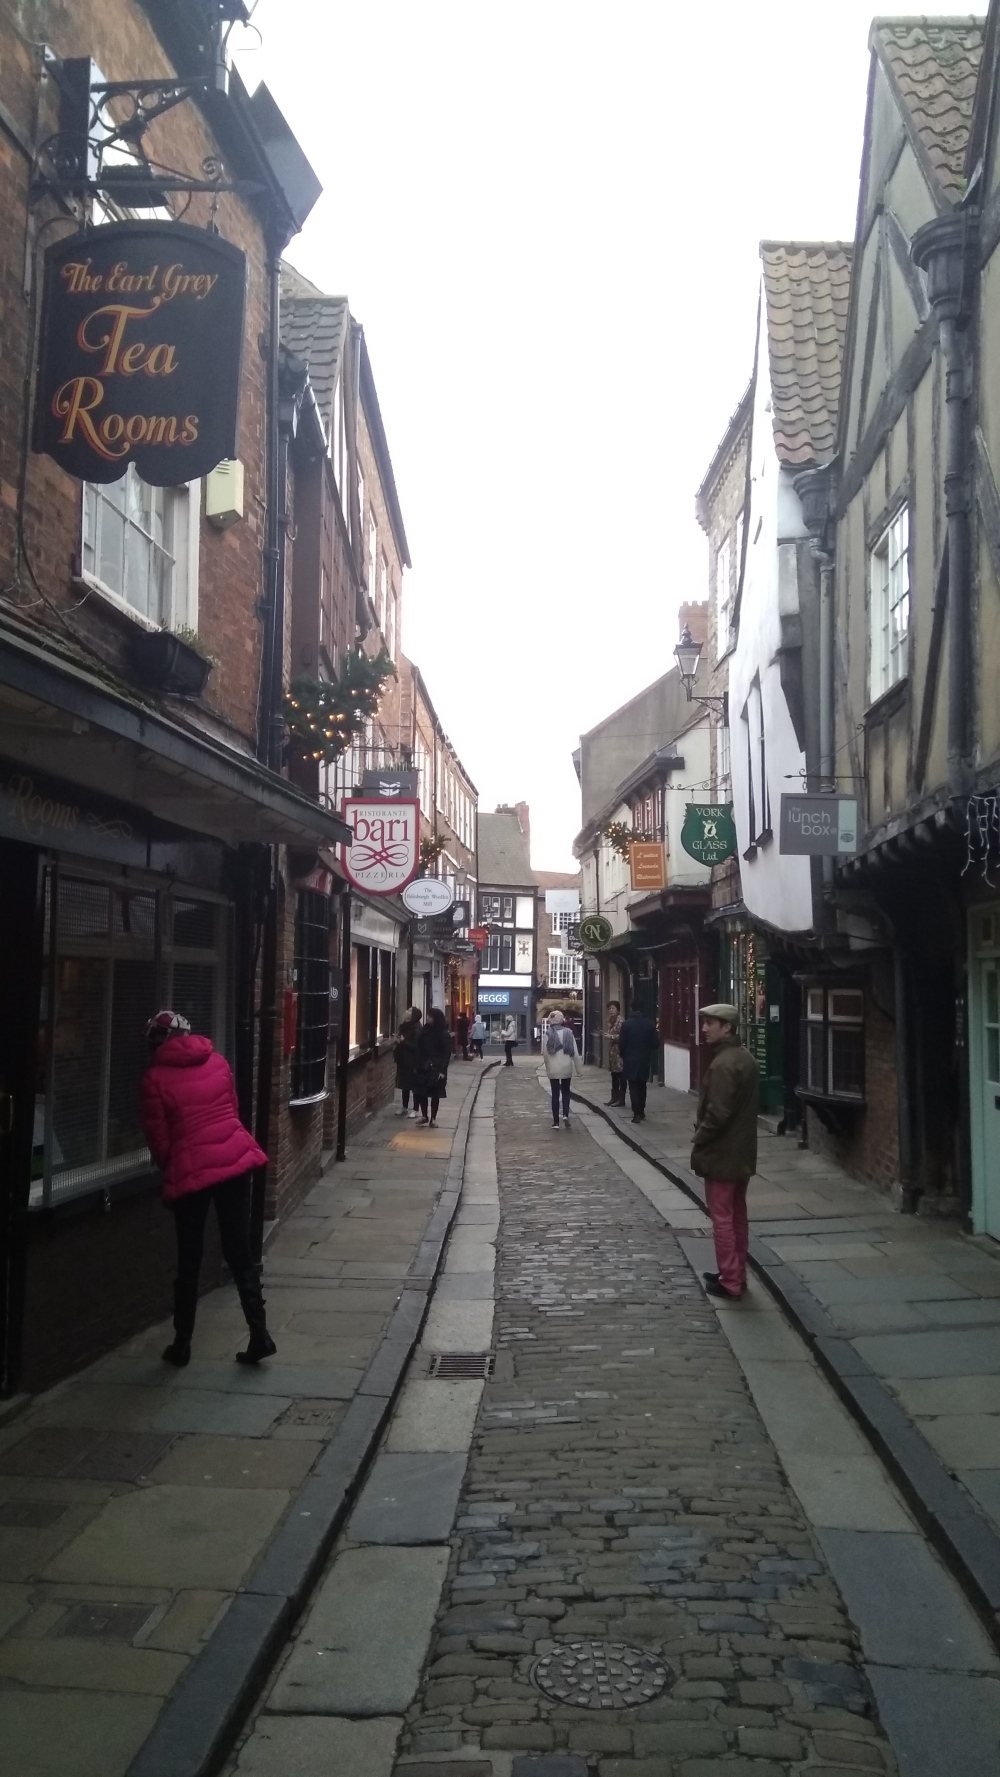 Walking around The Shambles in York, England